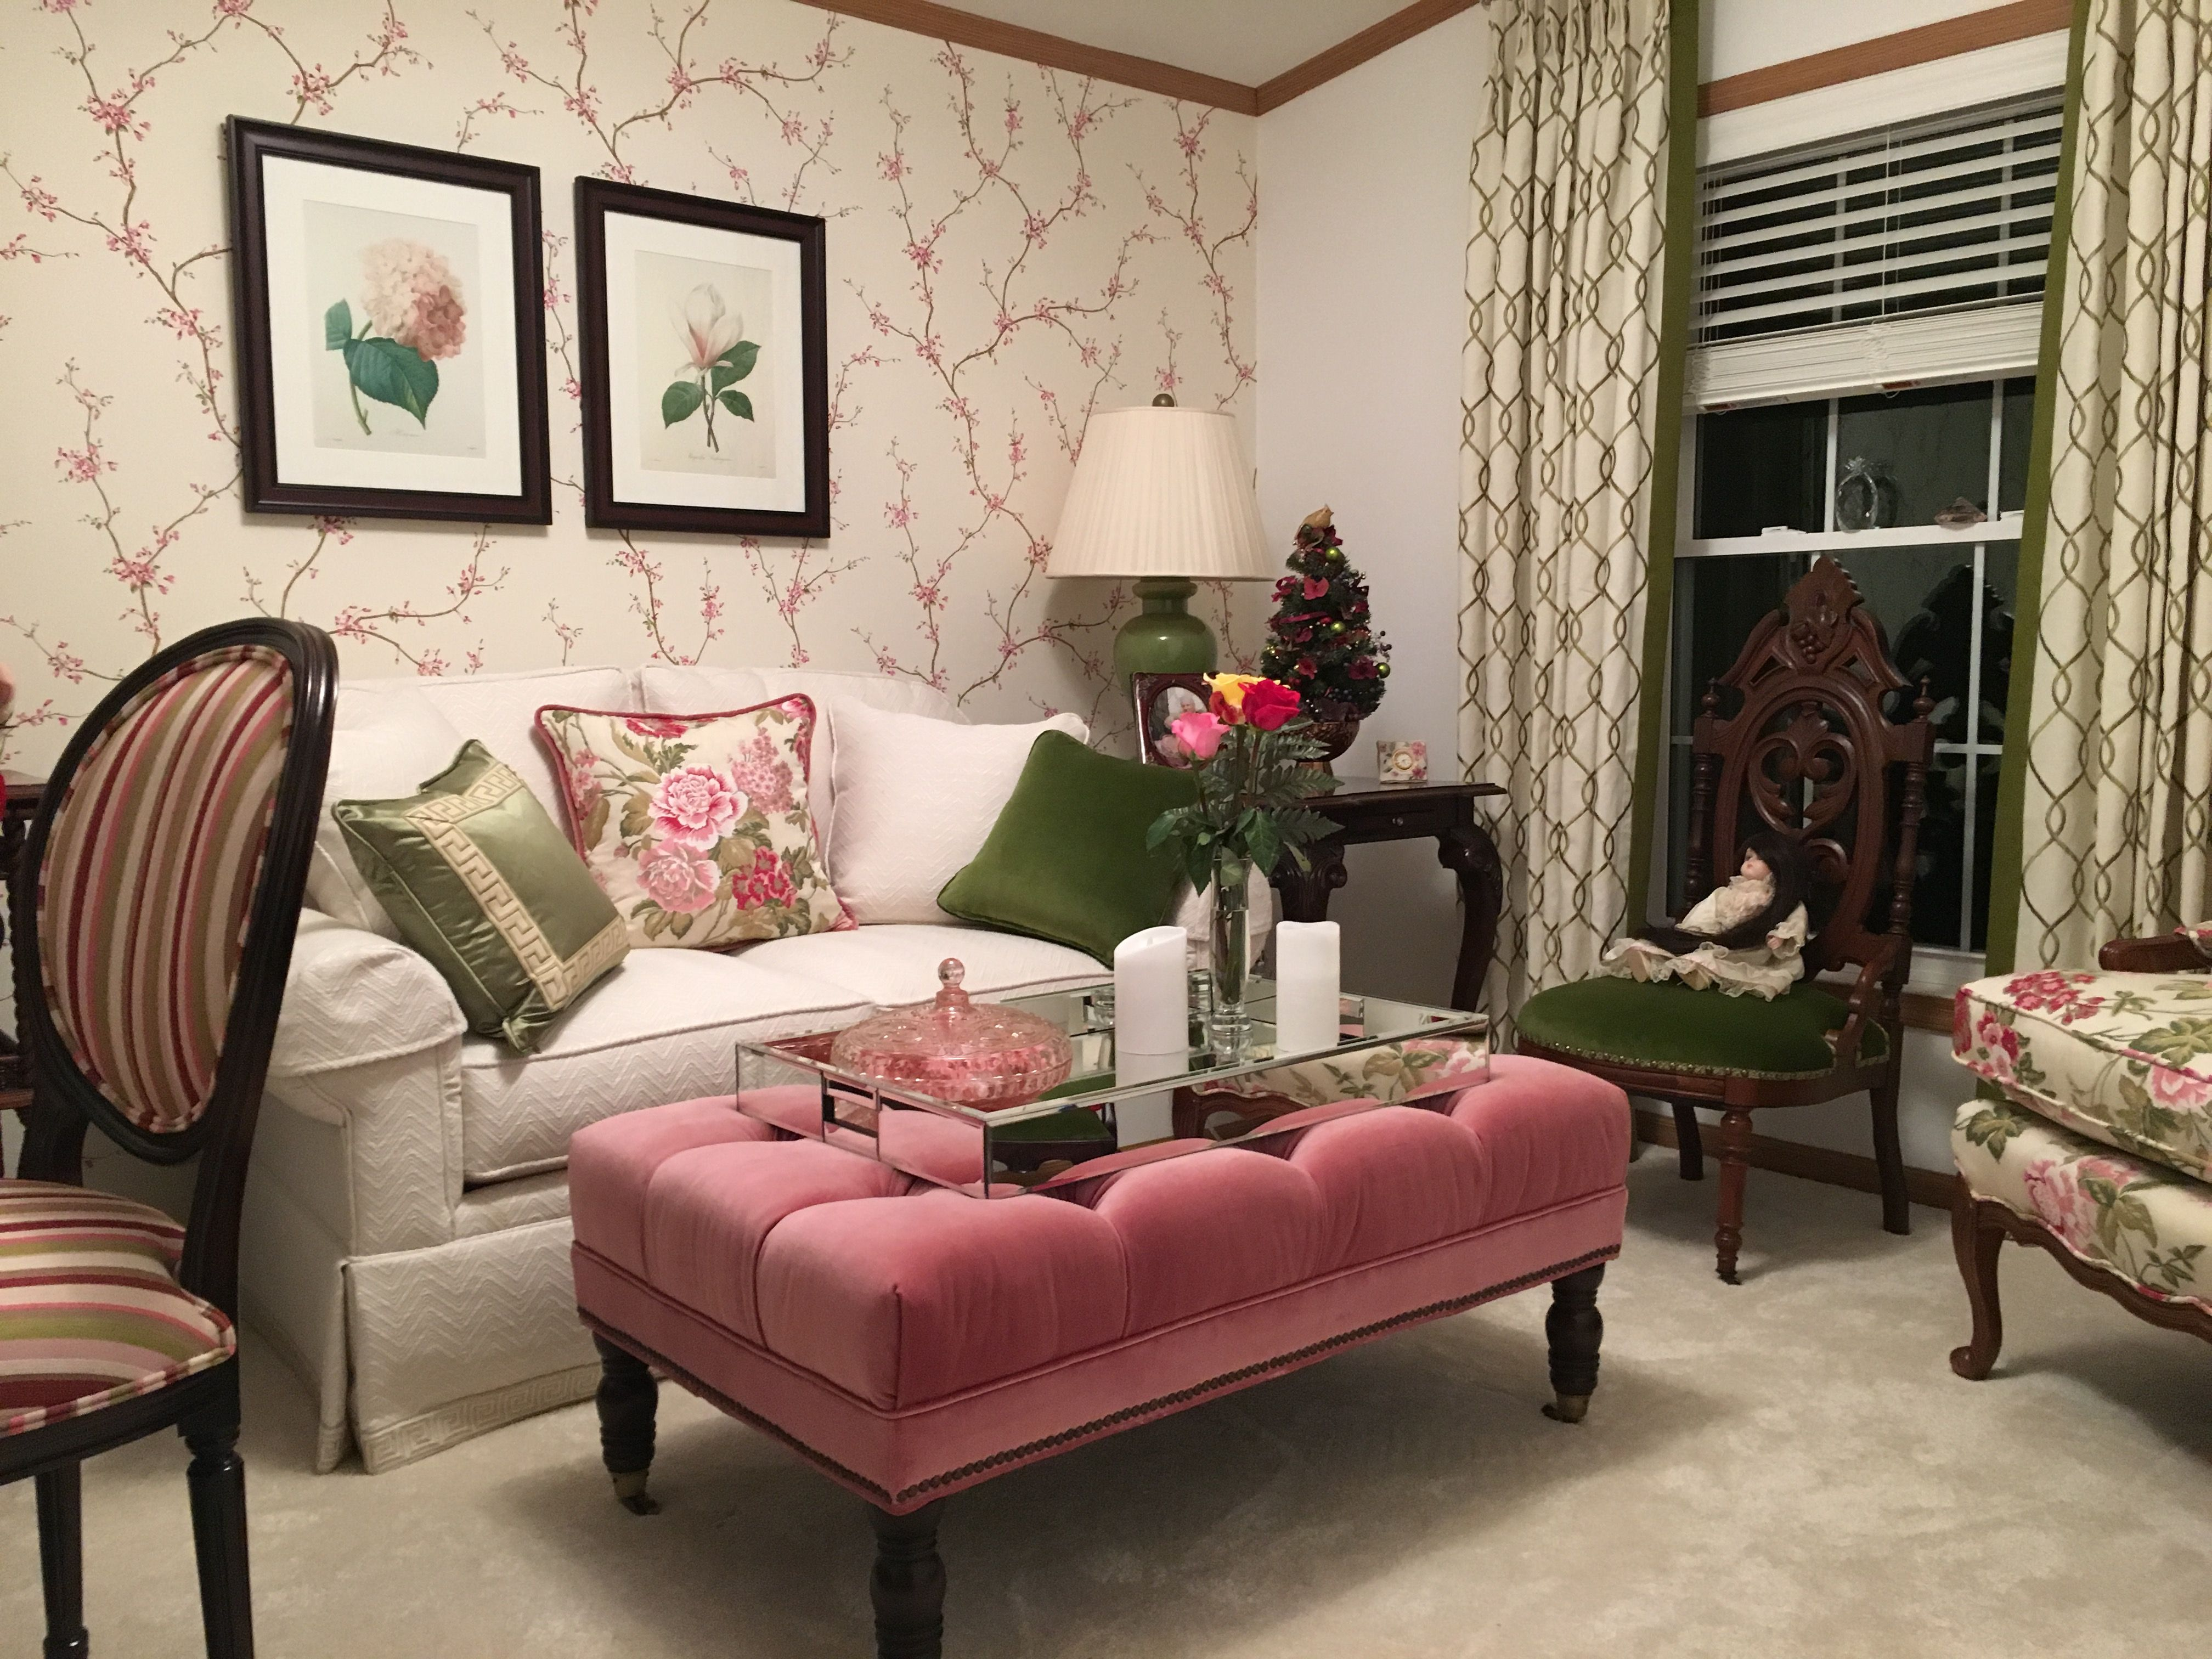 Garden Inspired Sitting Room In Pink And Green With Floral Lattice And Greek Key Patterns Quality Living Room Furniture Living Room Red Home Living Room